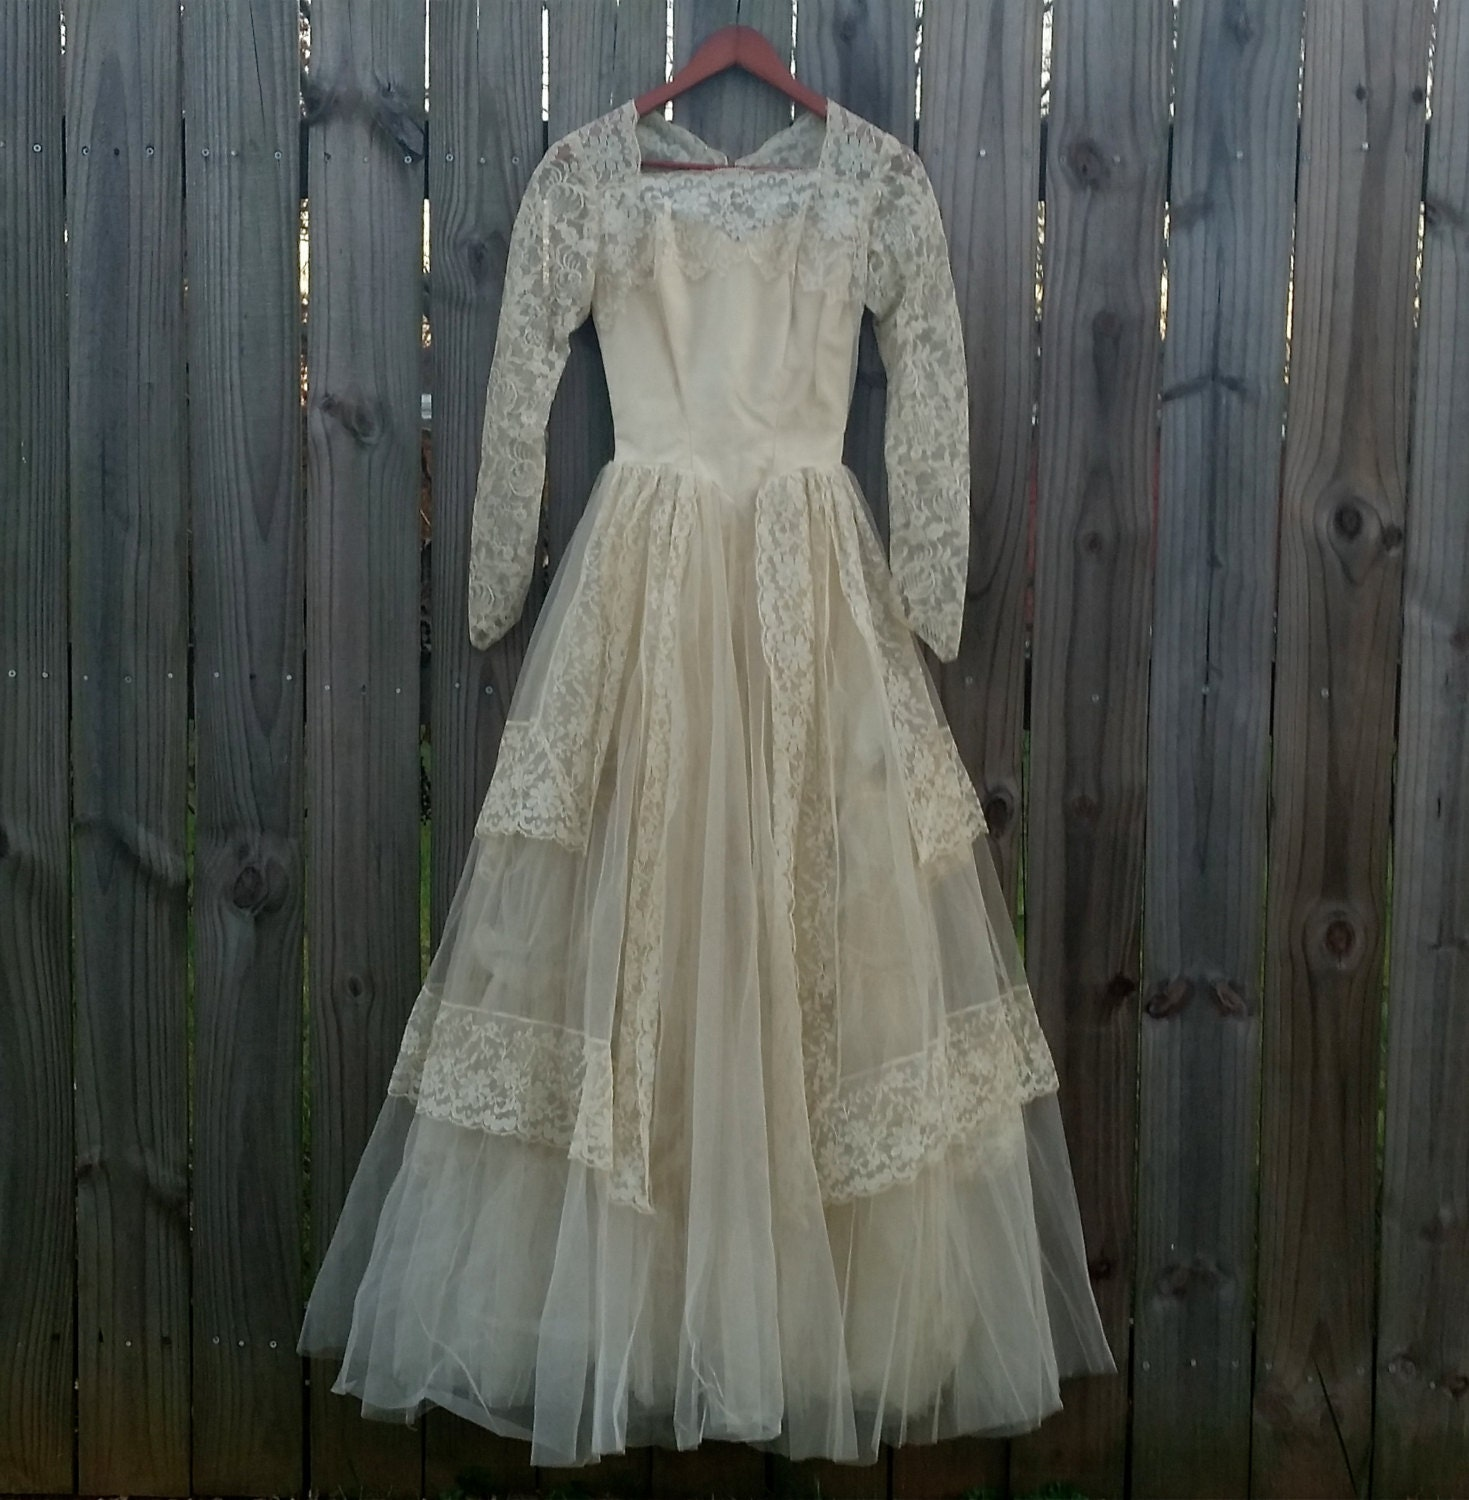 Vintage Wedding Dresses 50s 60s: Vintage Wedding Dress 50s 60s Kate Middleton By